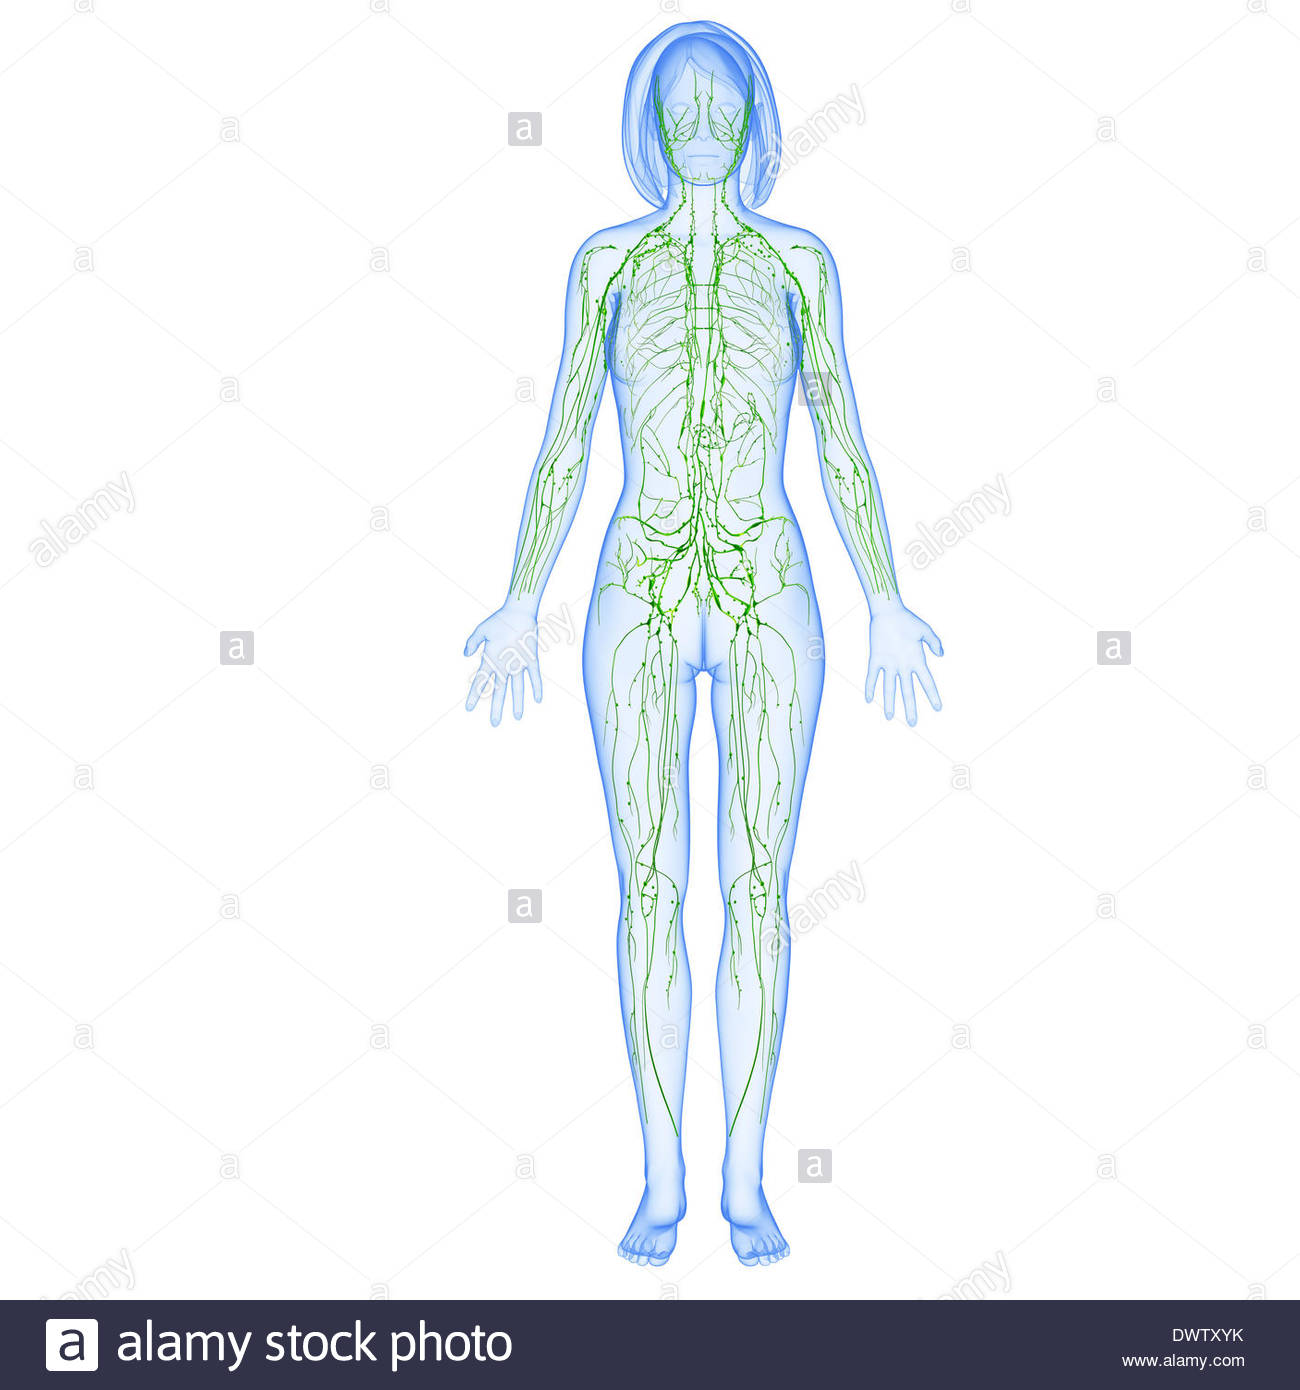 Related Pictures Full Body Diagram Showing The Lymphatic Nodes